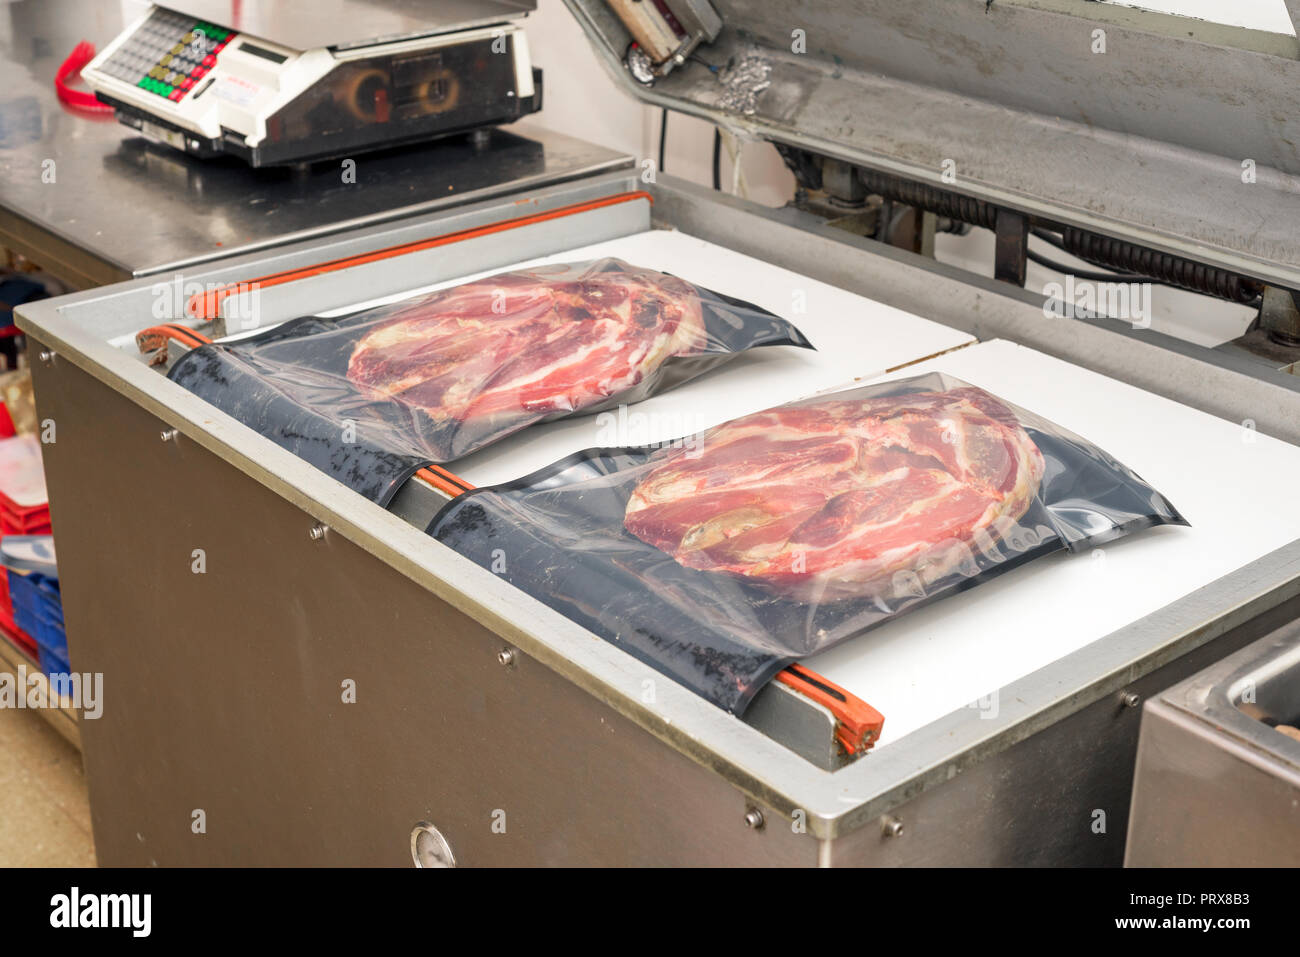 Heat Vacuum sealing machine for meat industry - Stock Image